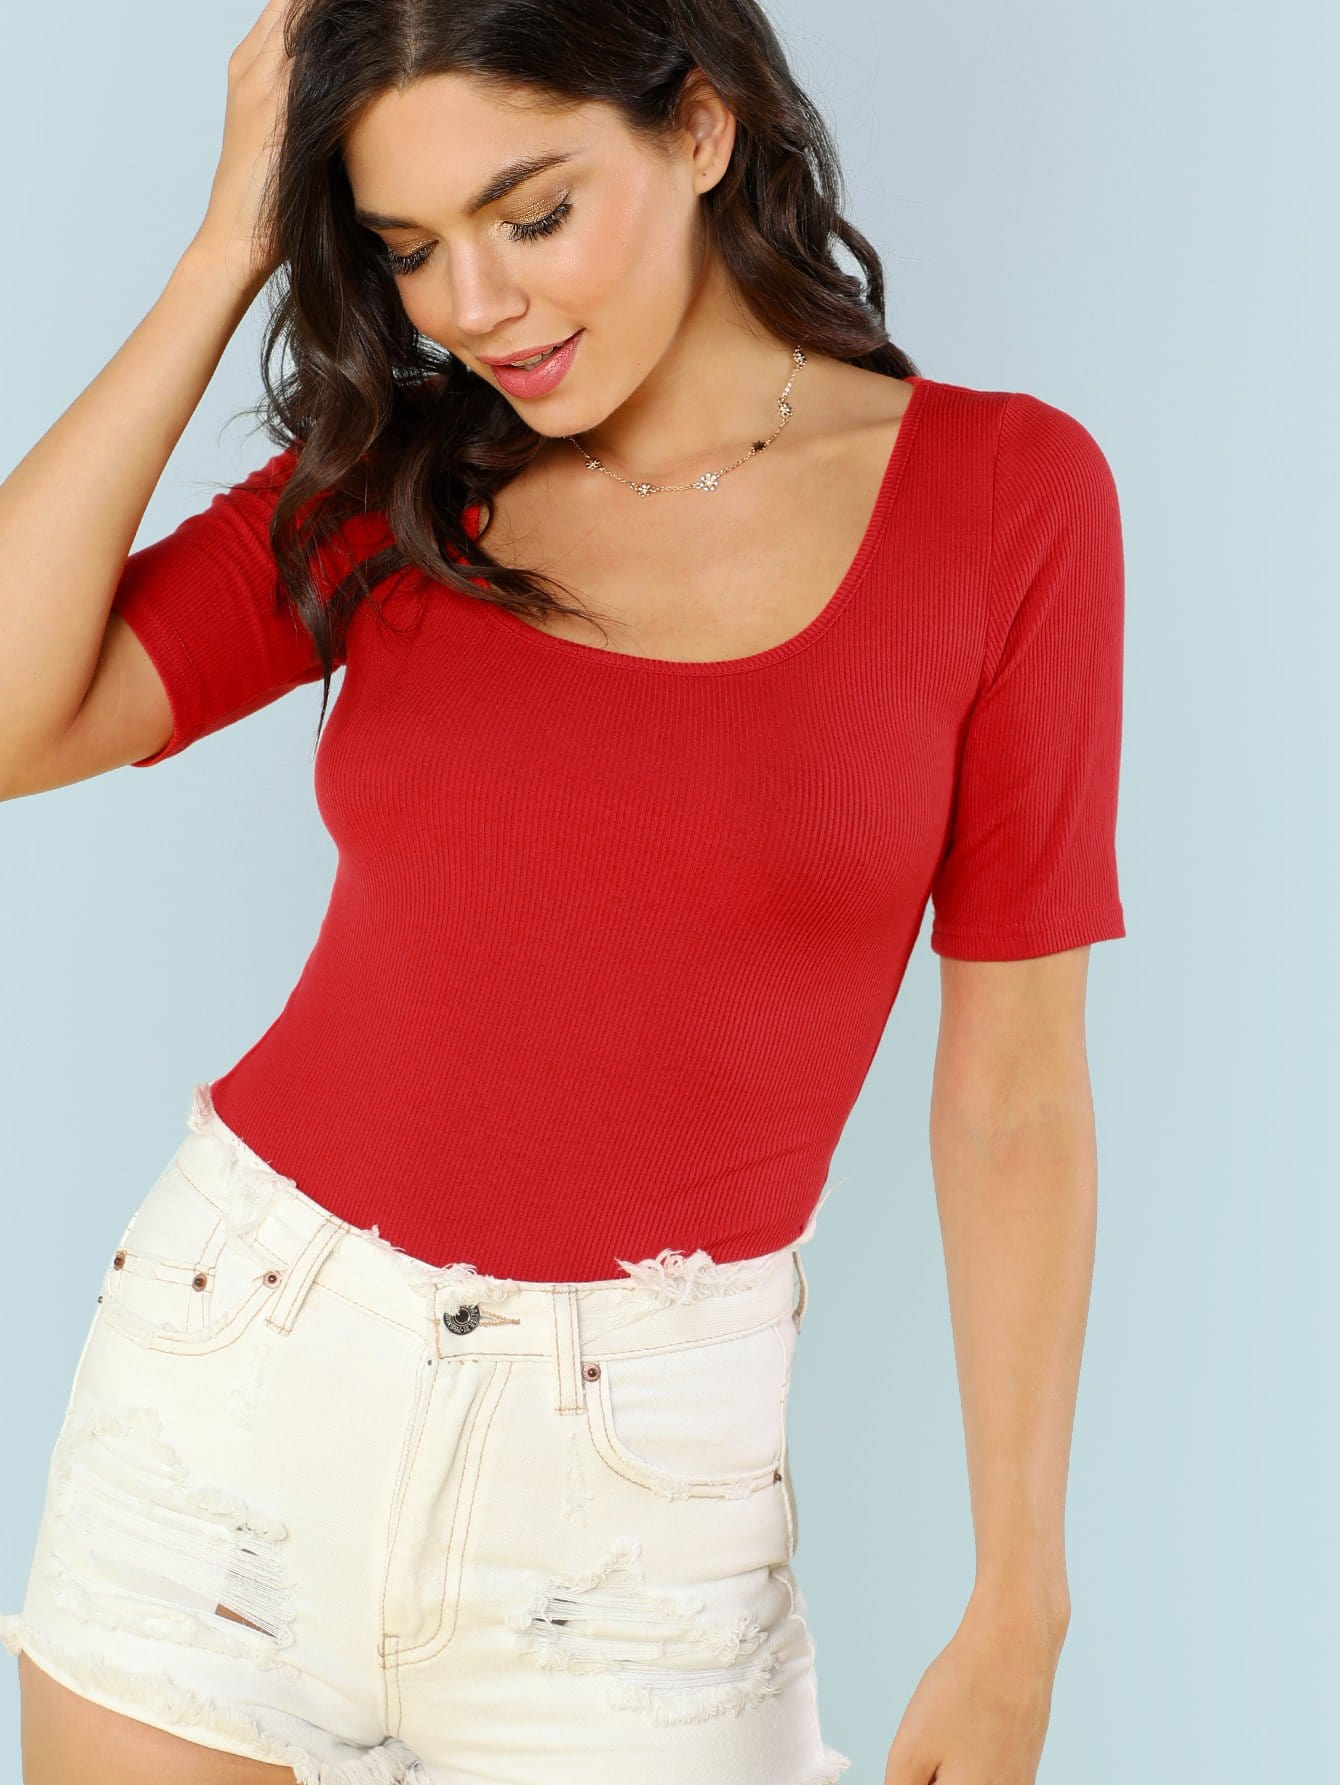 Scoop Neck Fitted Tee наматрасники candide наматрасник водонепроницаемый waterproof fitted sheet 60x120 см